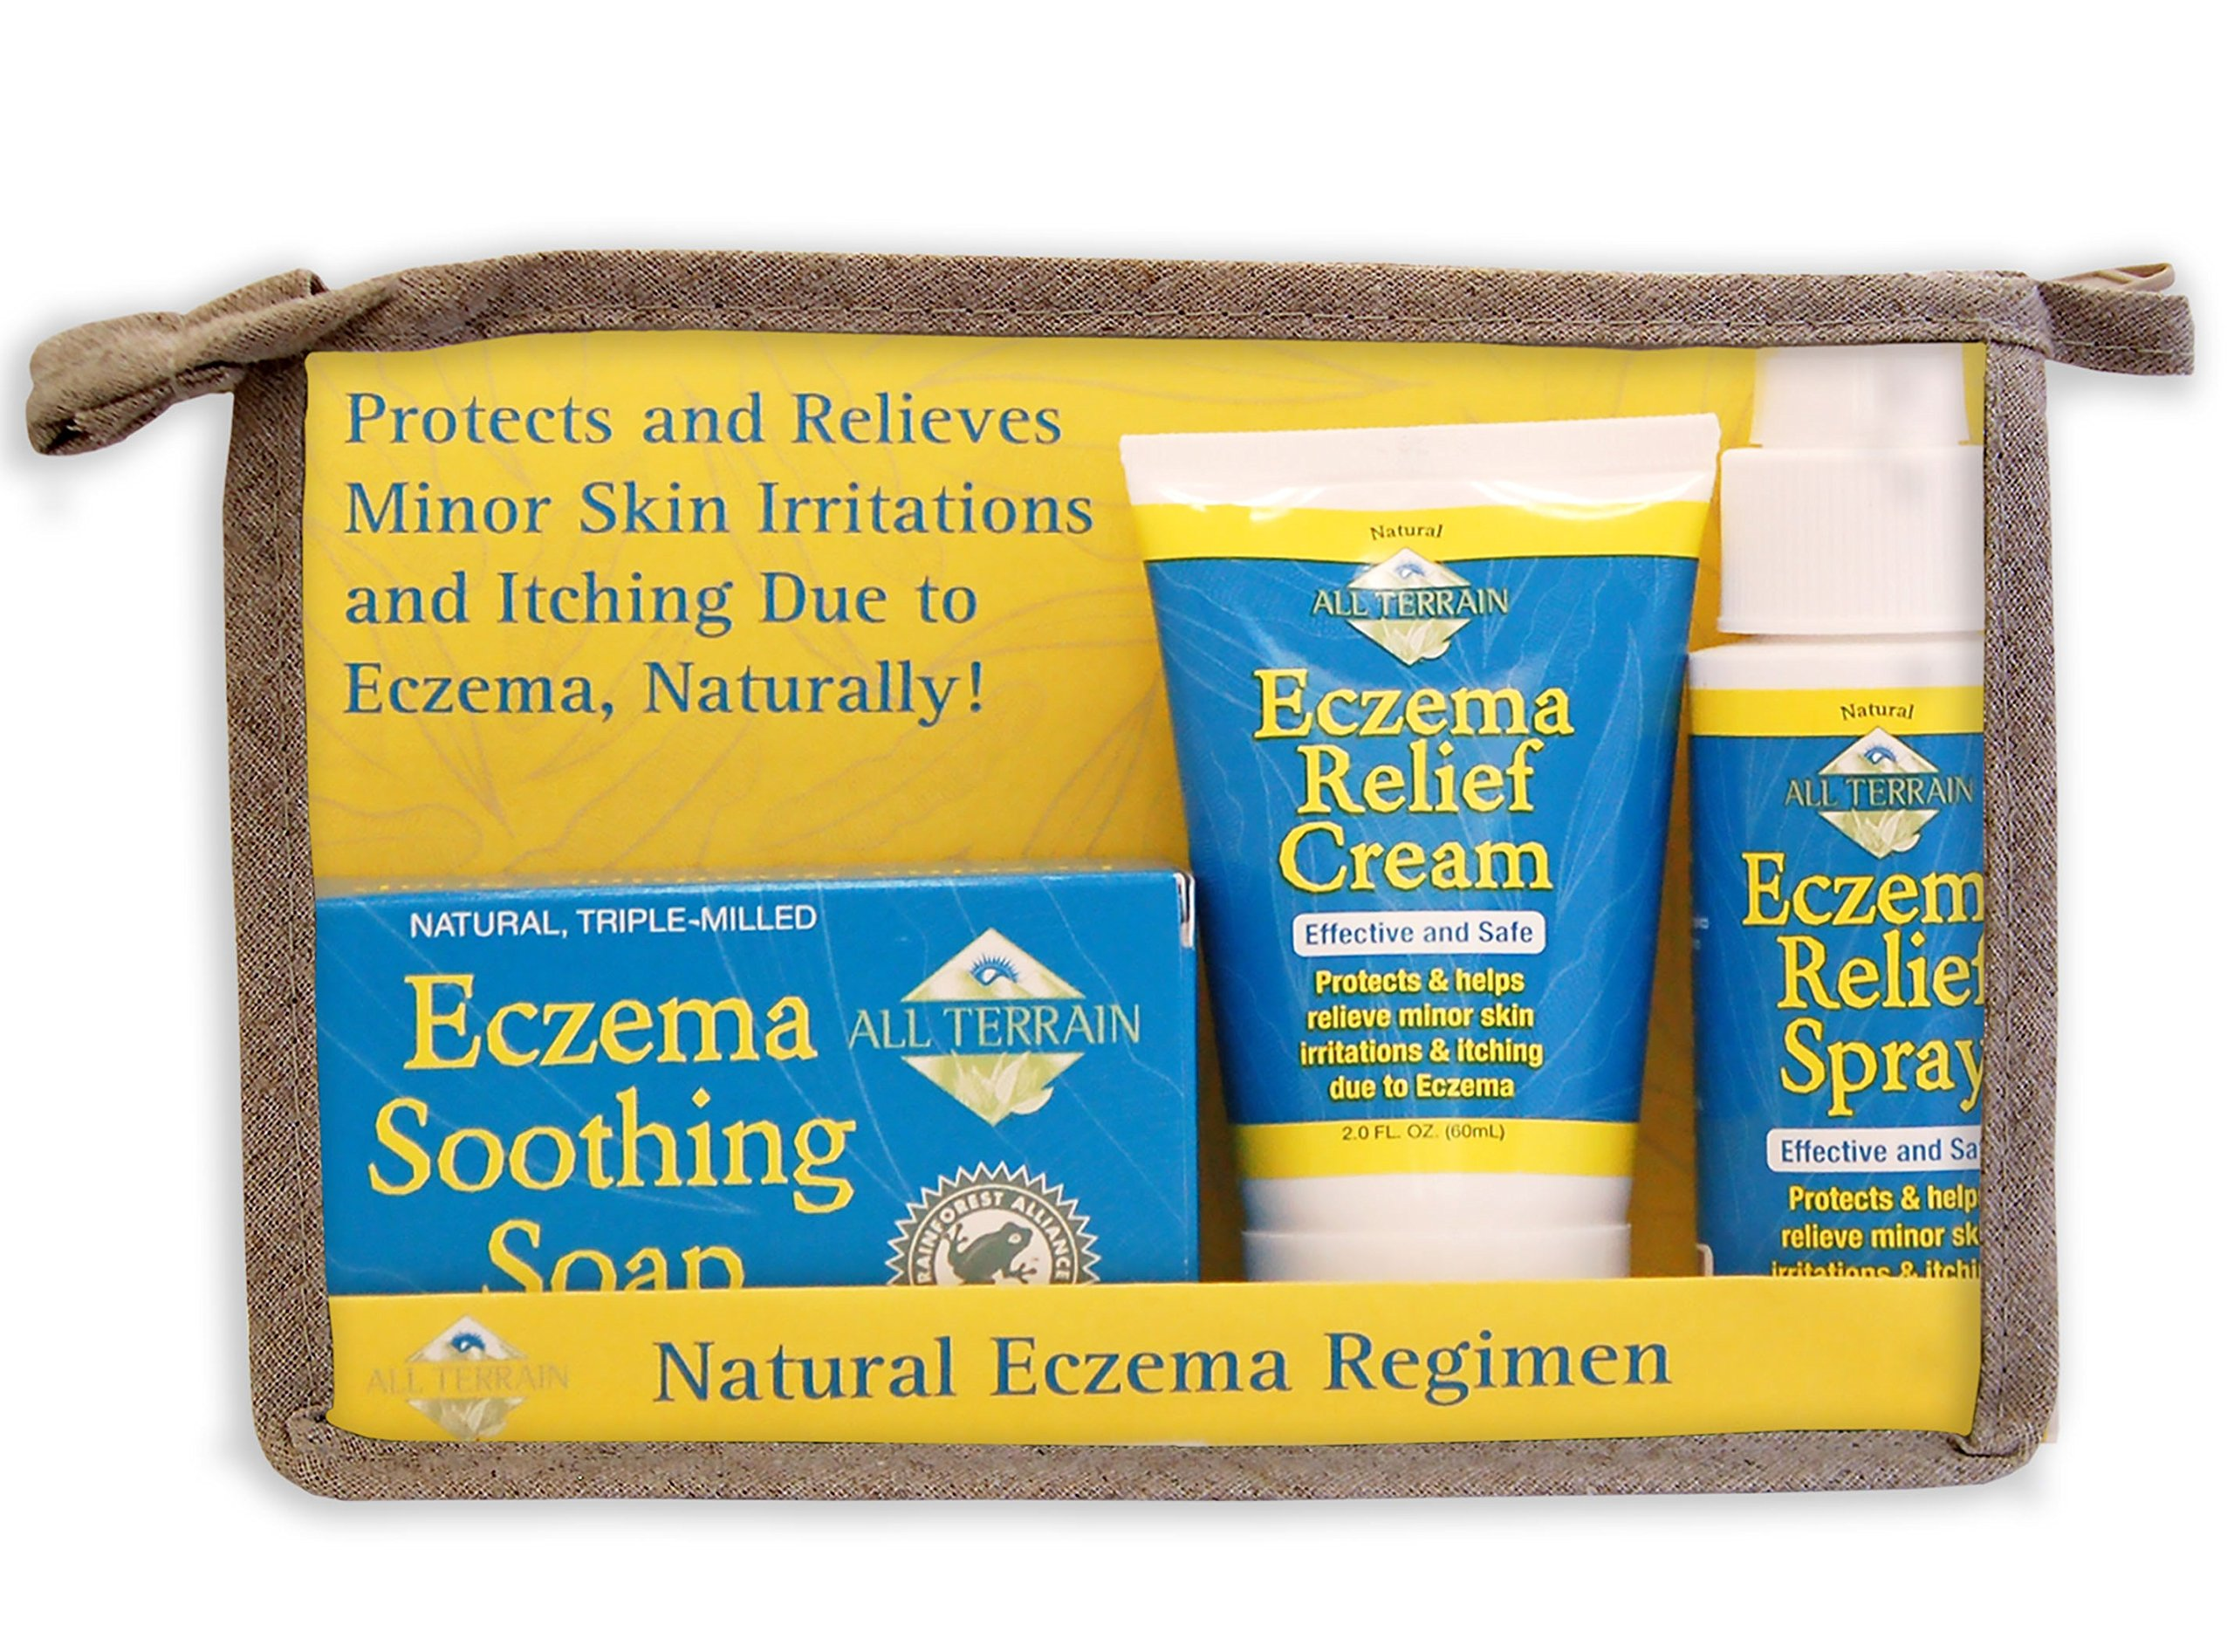 All Terrain Natural Eczema Regimen 3pc, Soothing Soap, Relief Cream & Spray, Safe & Effective Eczema Relief, Contains Natural Ingredients